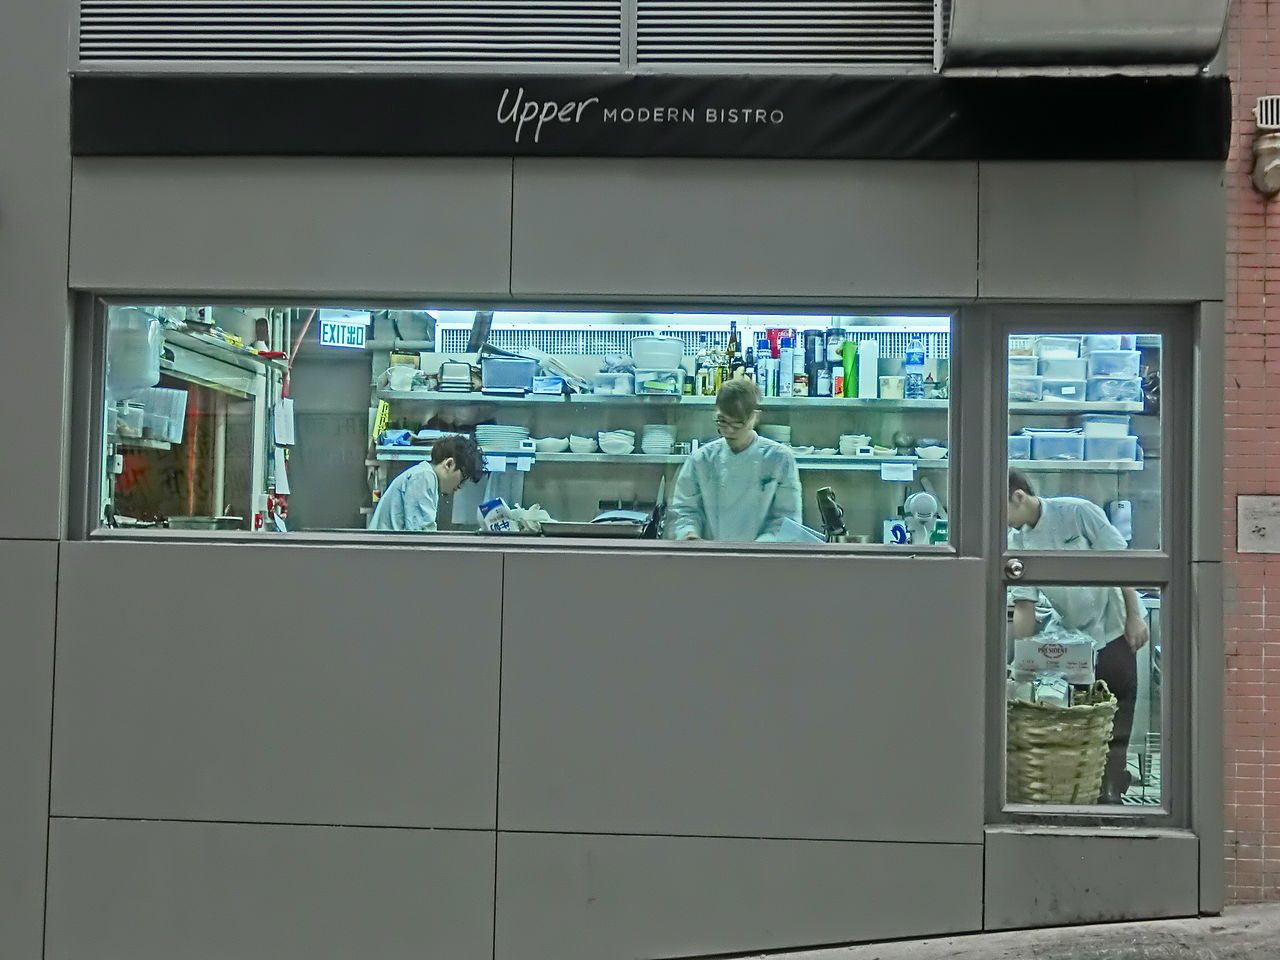 Restaurant Kitchen Stations file:hk 上環 sheung wan evening 差館上街 upper station street